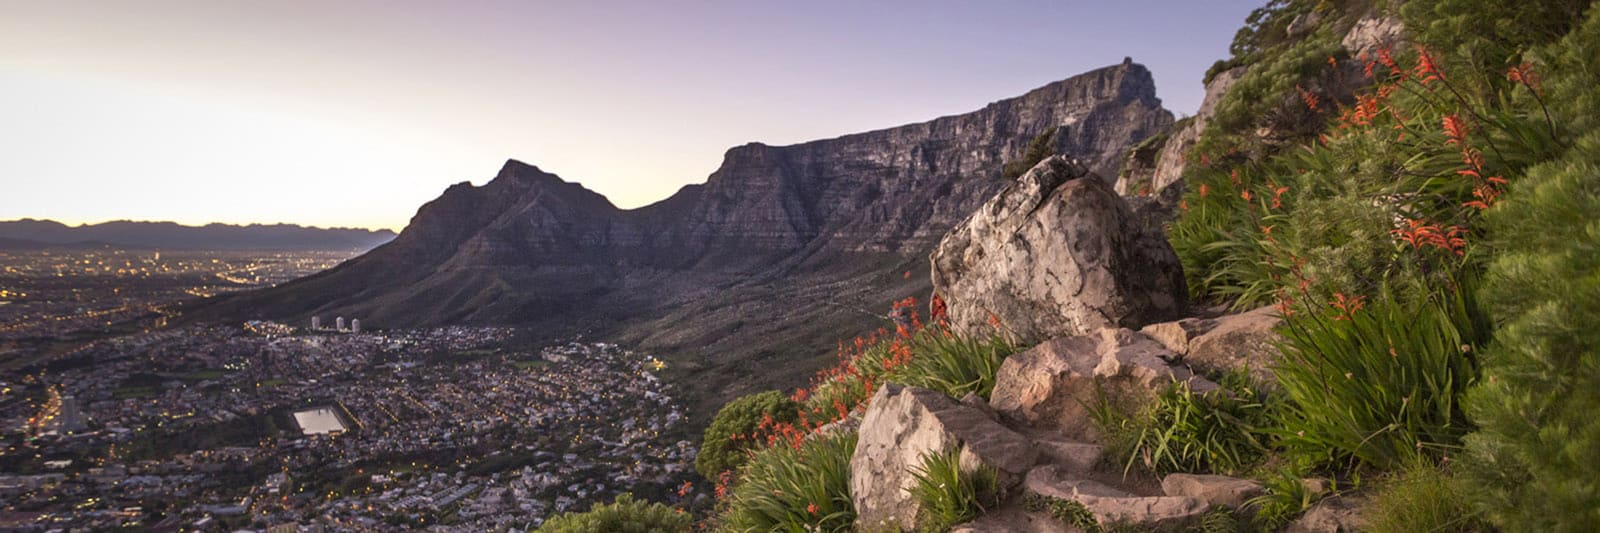 10 Fun Facts About Table Mountain